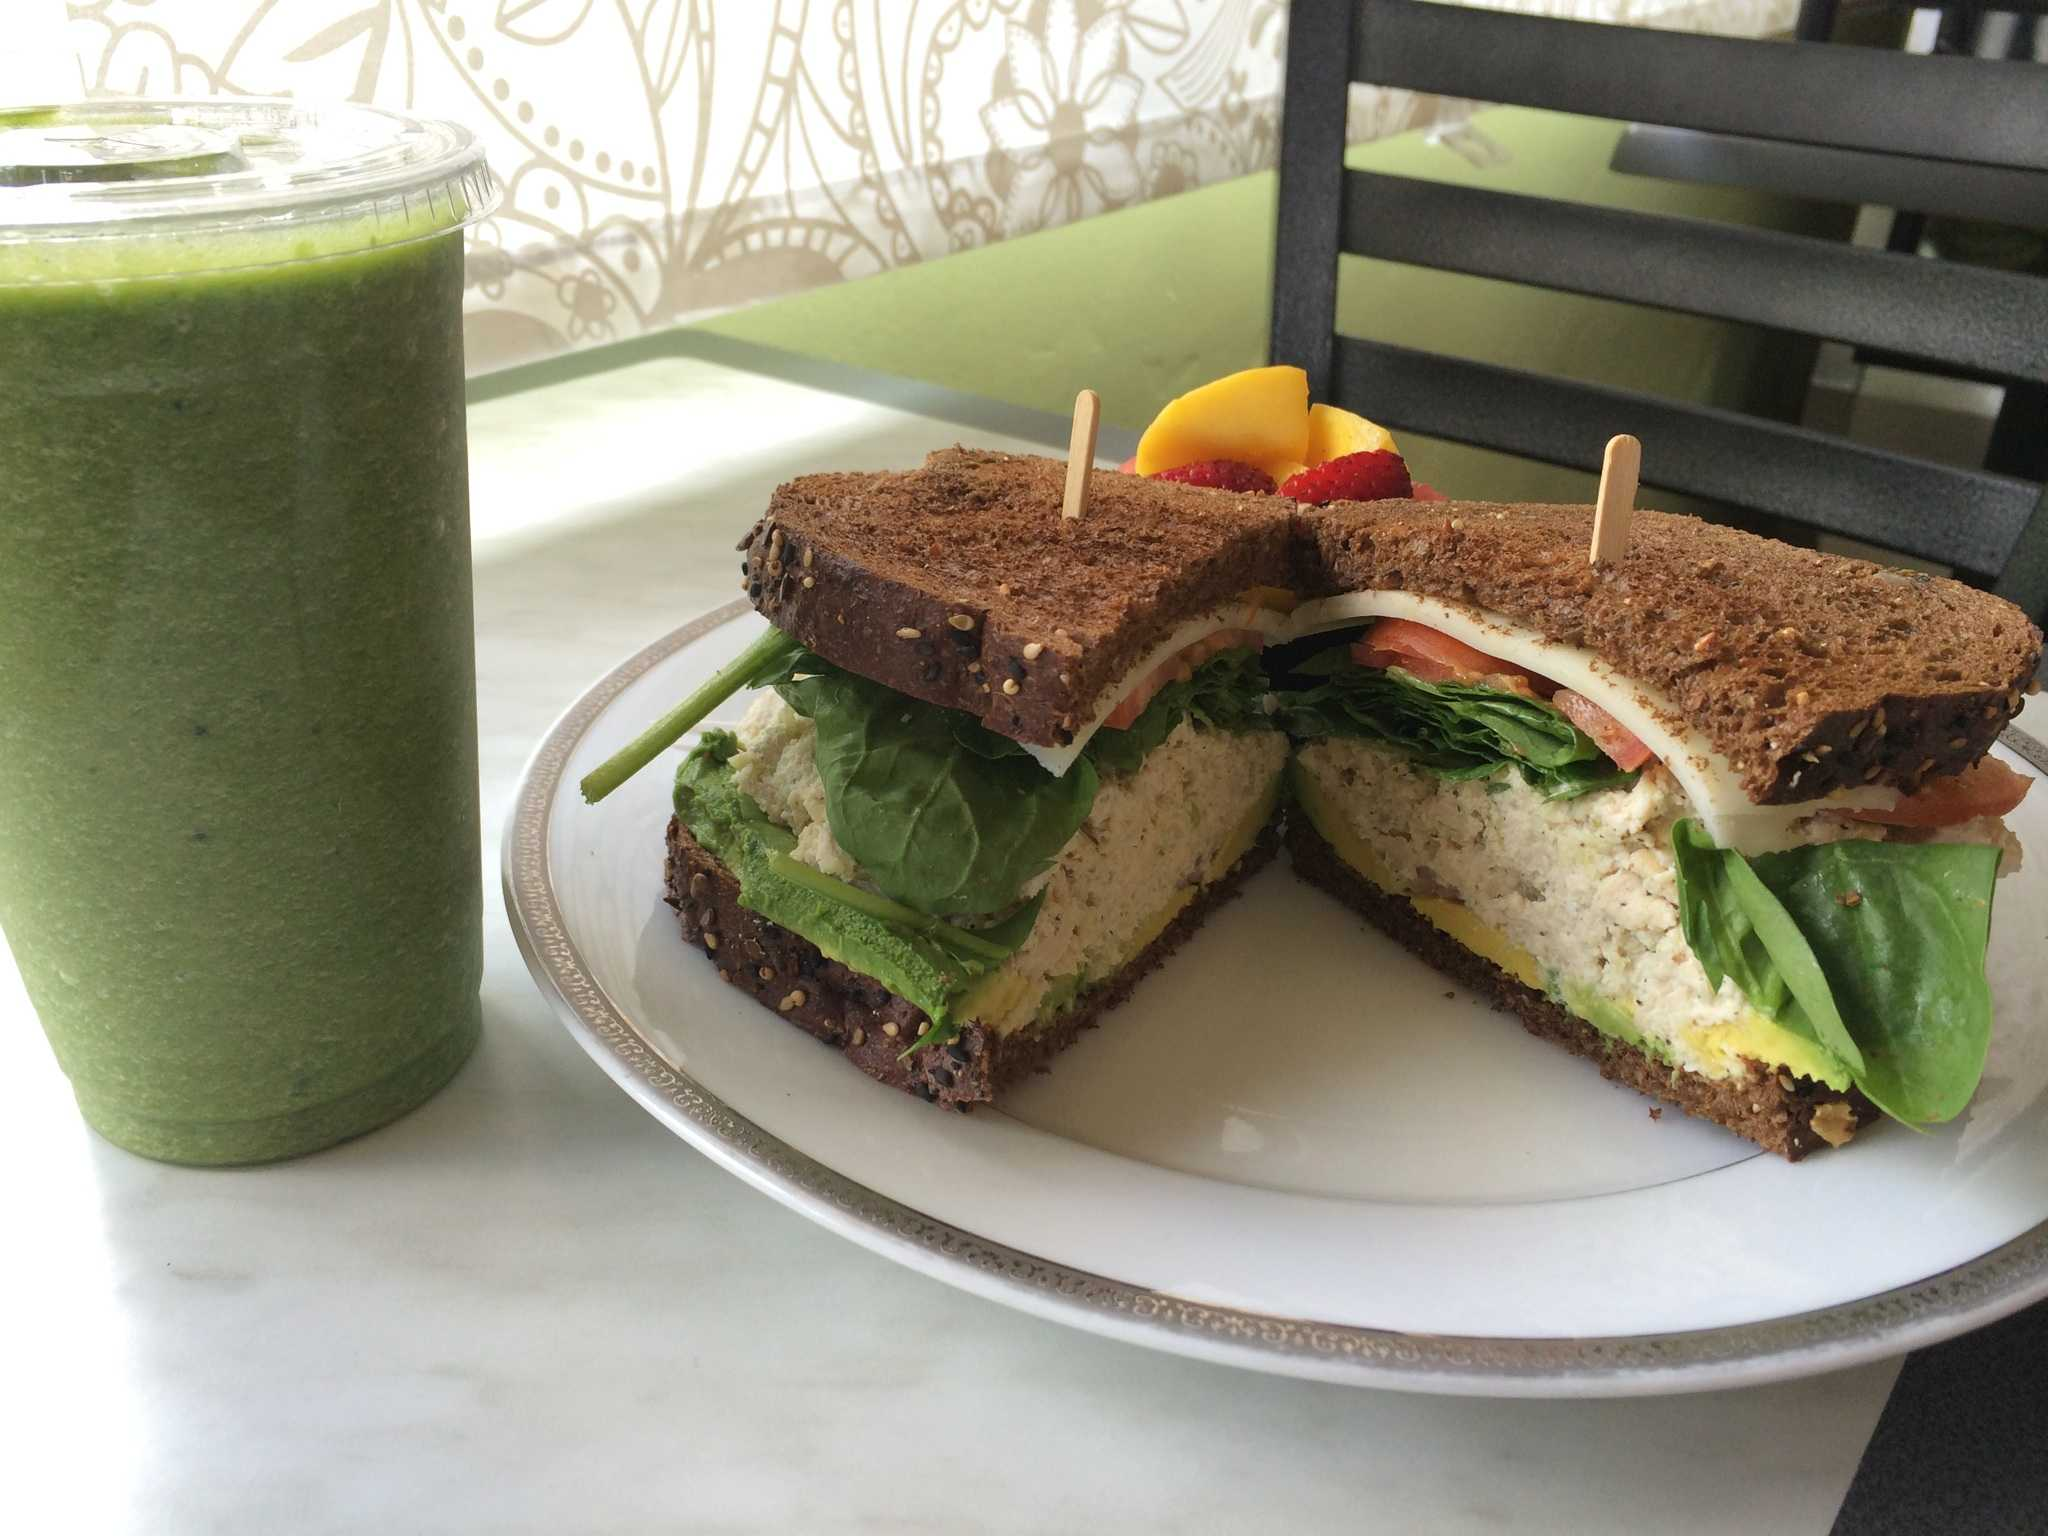 The Liv Green Smoothie contains cactus, pineapple and various fruits. The Chicken Salad Sandwich includes baby spinach, red onion, slices of avocado and provolone cheese. Photo credit: Franchesca Walker